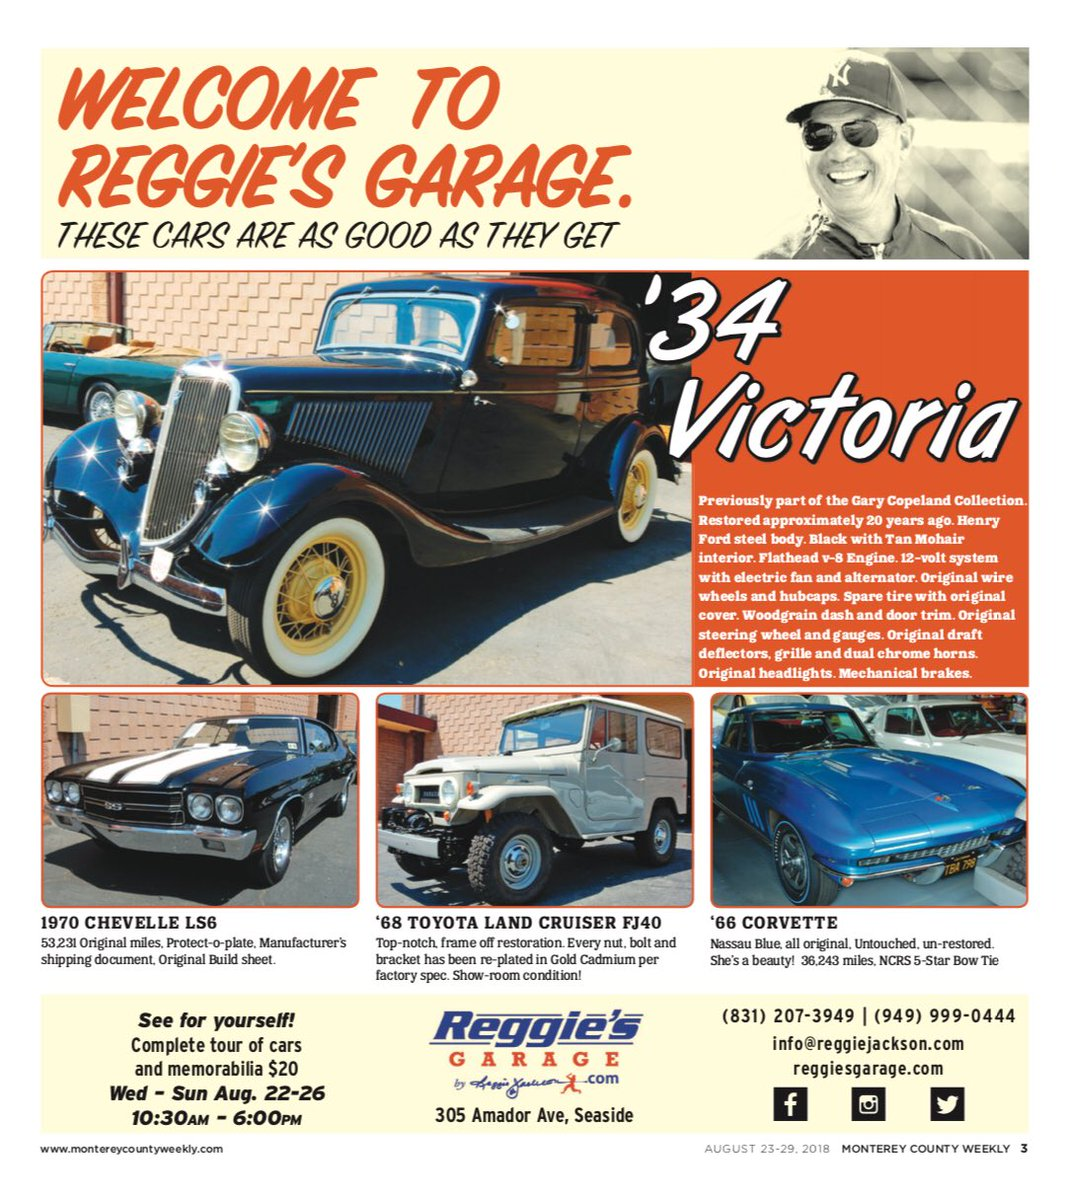 Reggie Jackson On Twitter Wednesday Through Sunday August 22nd To Ford Flathead 12 Volt Wiring 1246 Pm 22 Aug 2018 From Seaside Ca